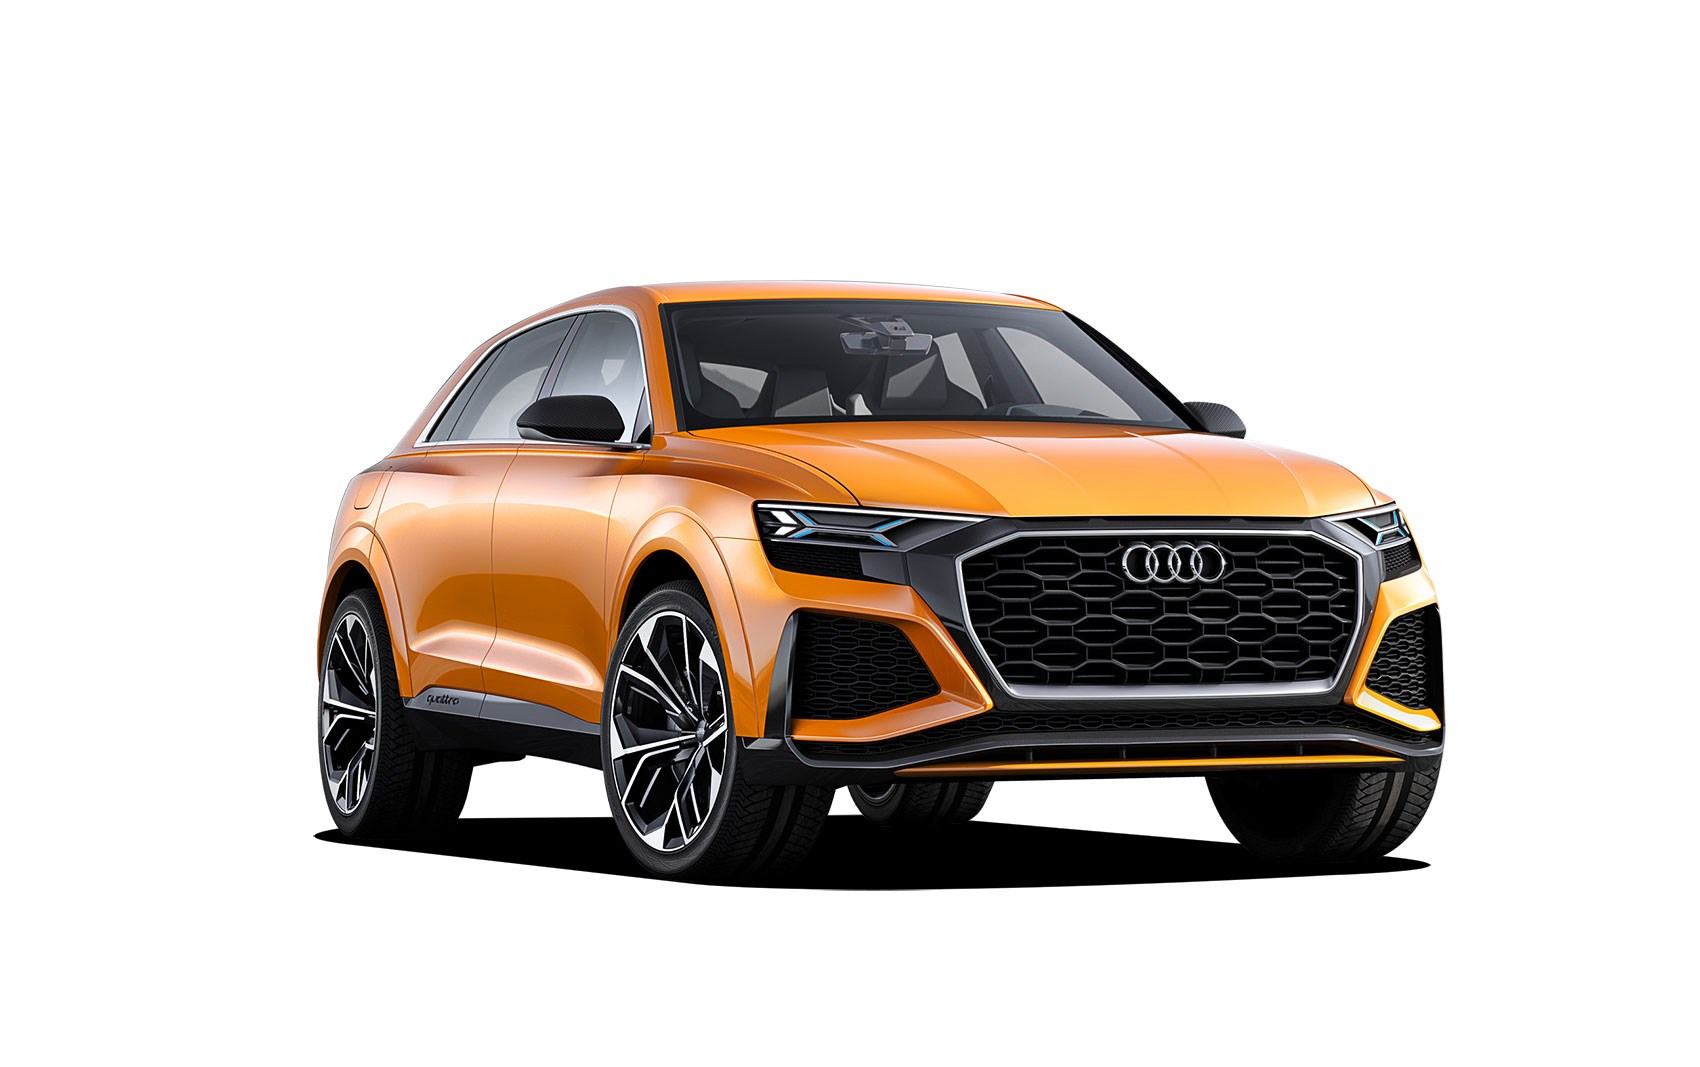 Audi rs7 price in india 2018 9